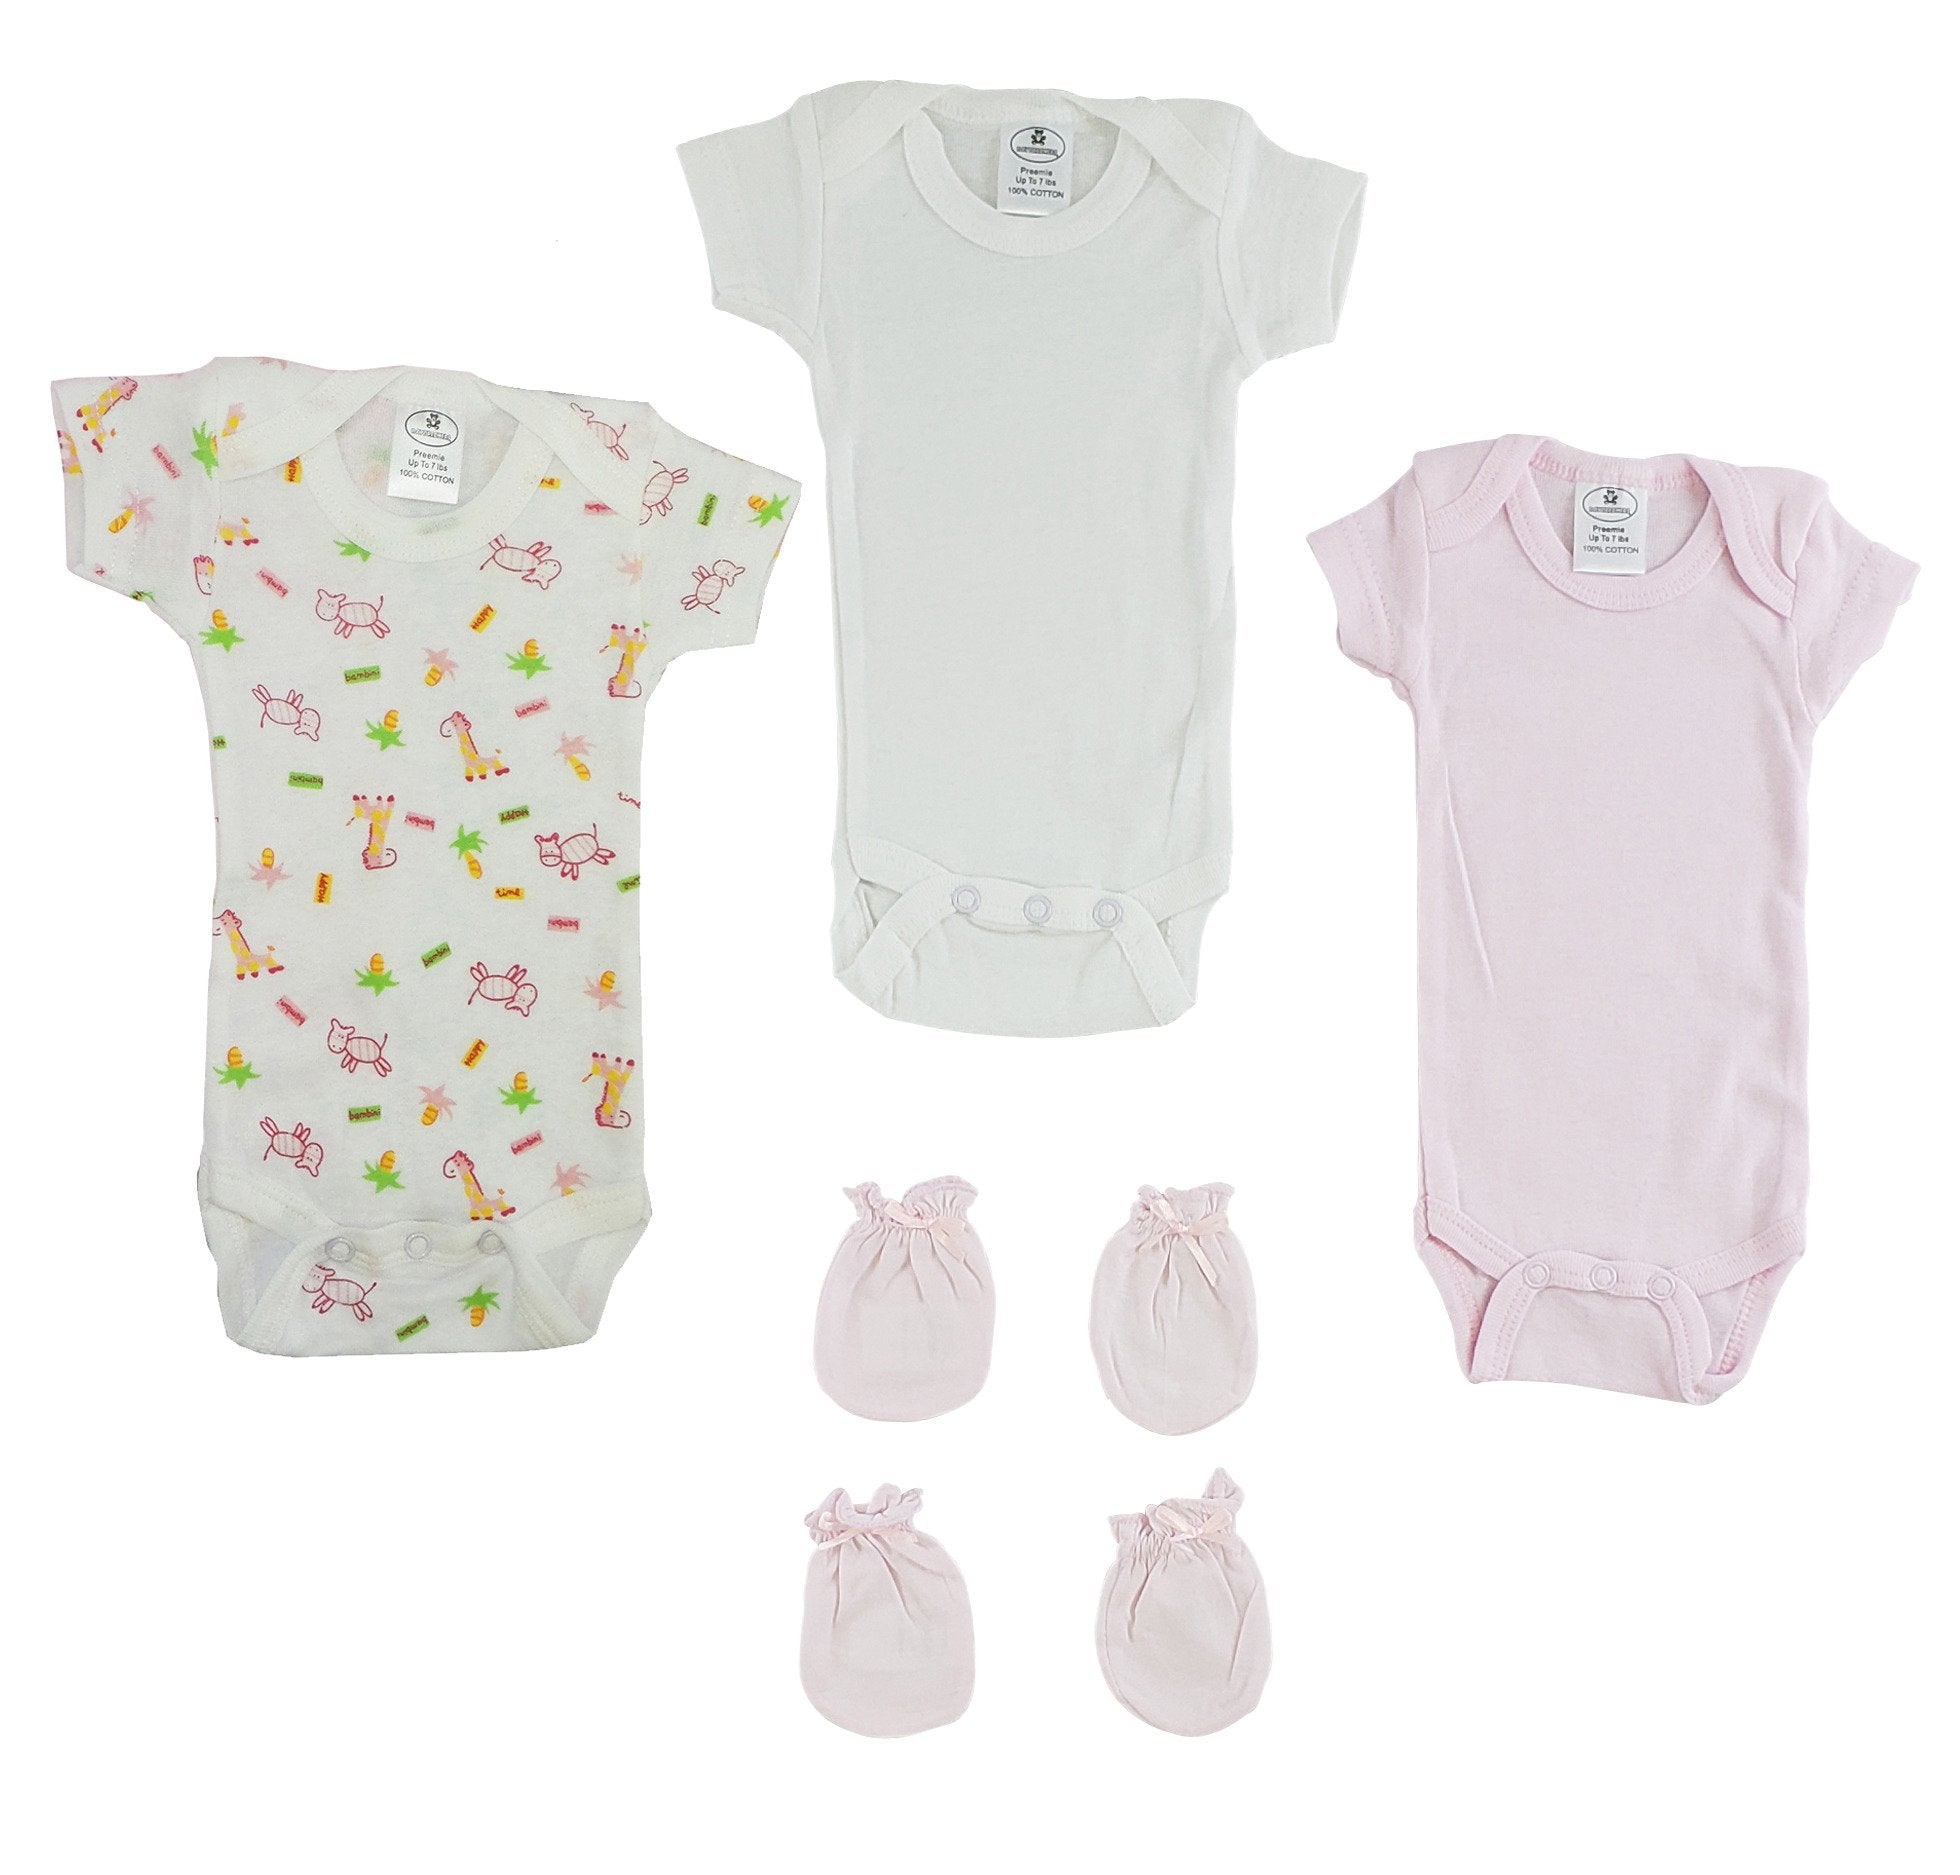 Preemie Onezies and Mittens - 5 Pcs Set - Baby World Inc